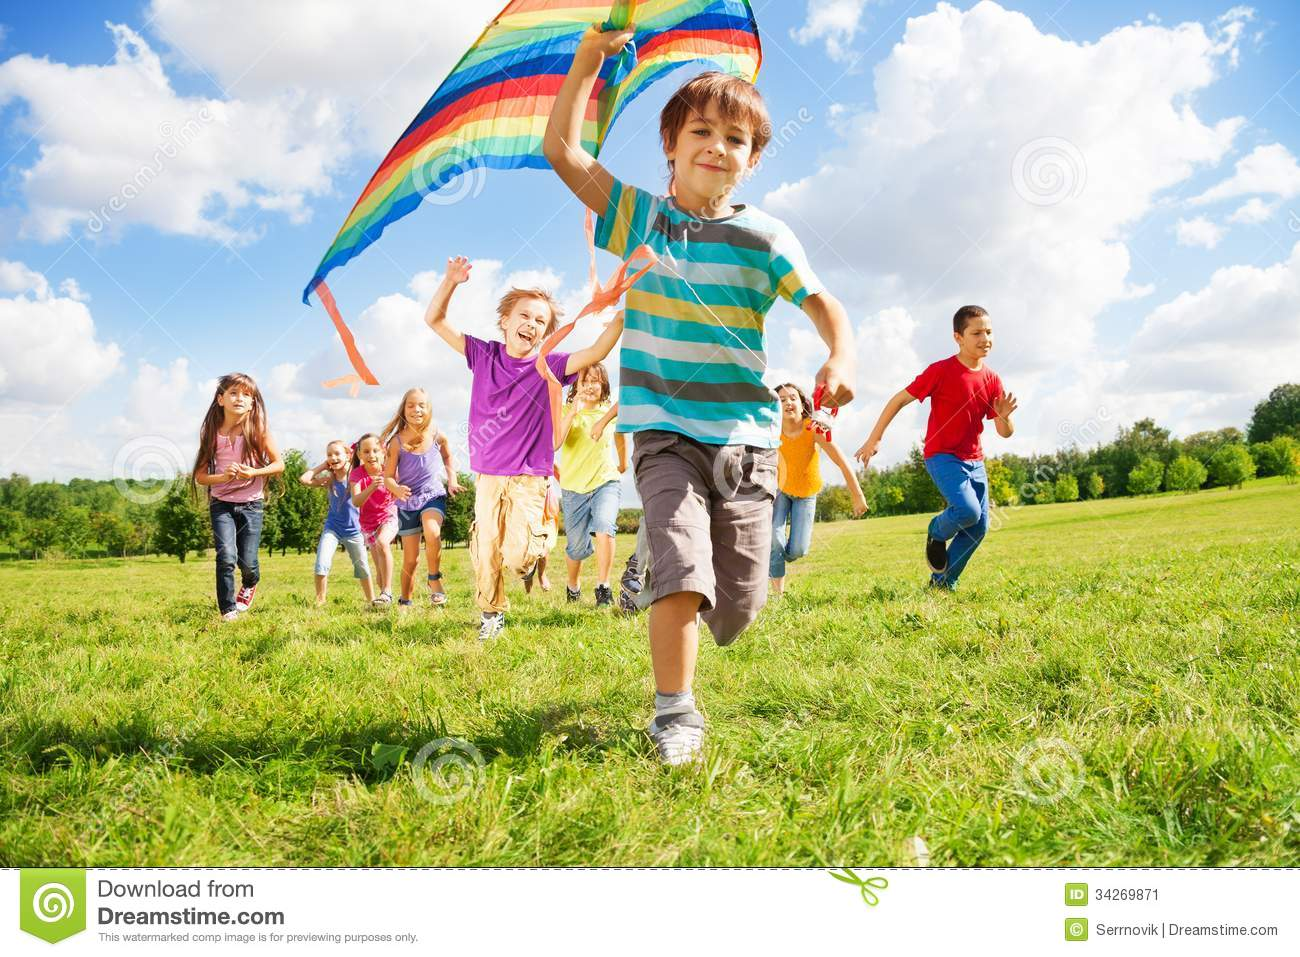 Many happy kids run together with kite on sunny summer day.